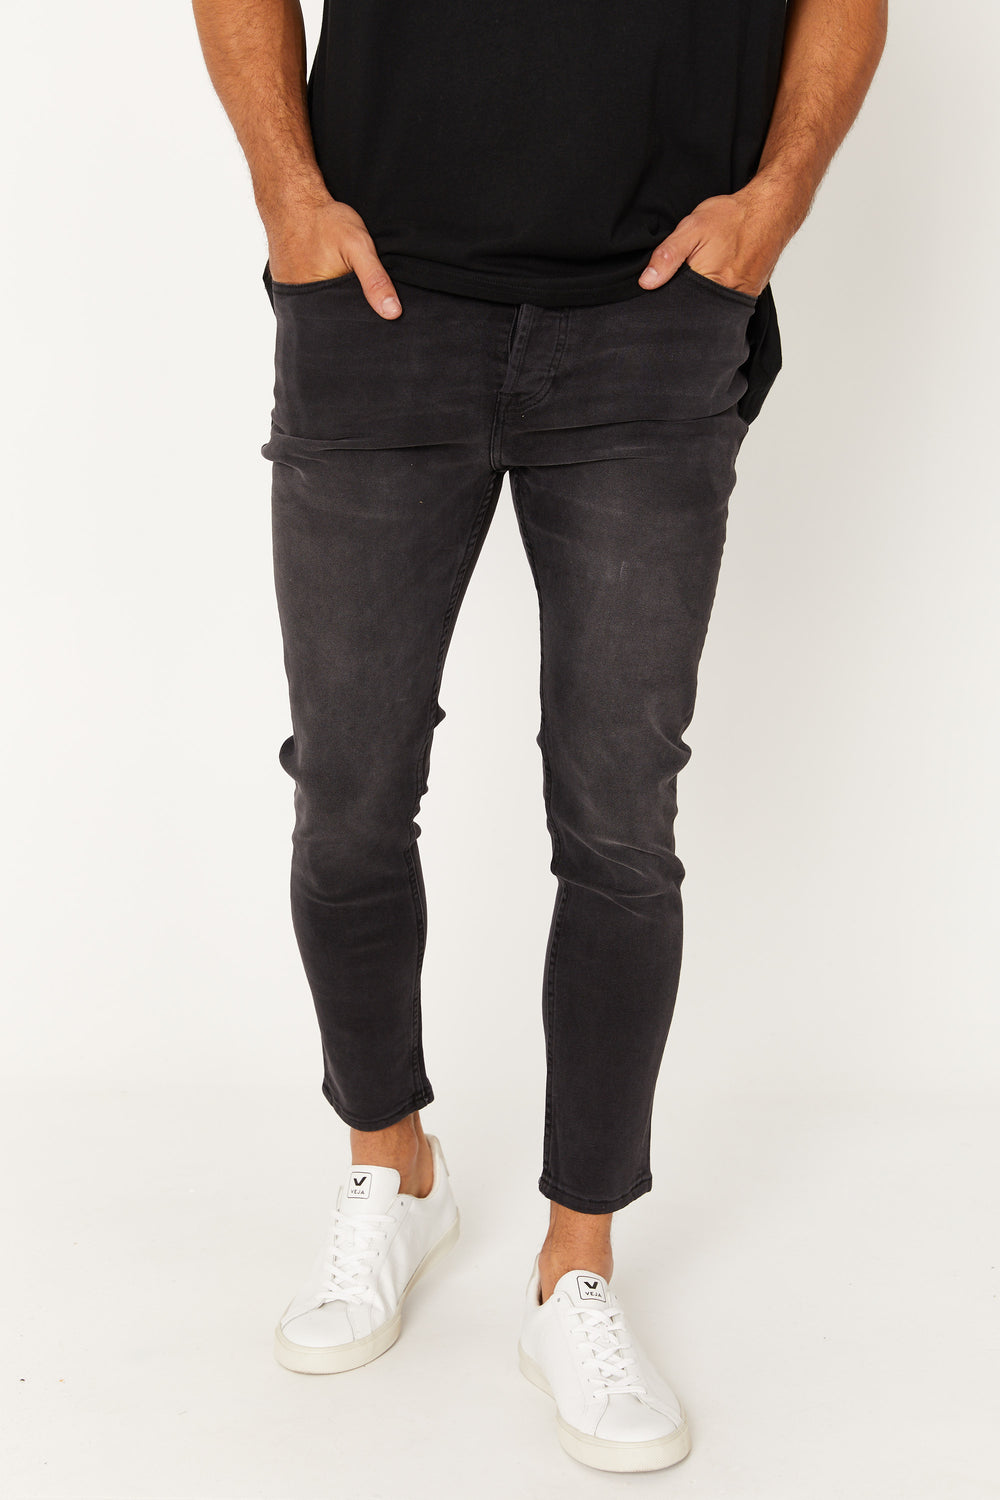 Nth Real Skinnys Wash Black